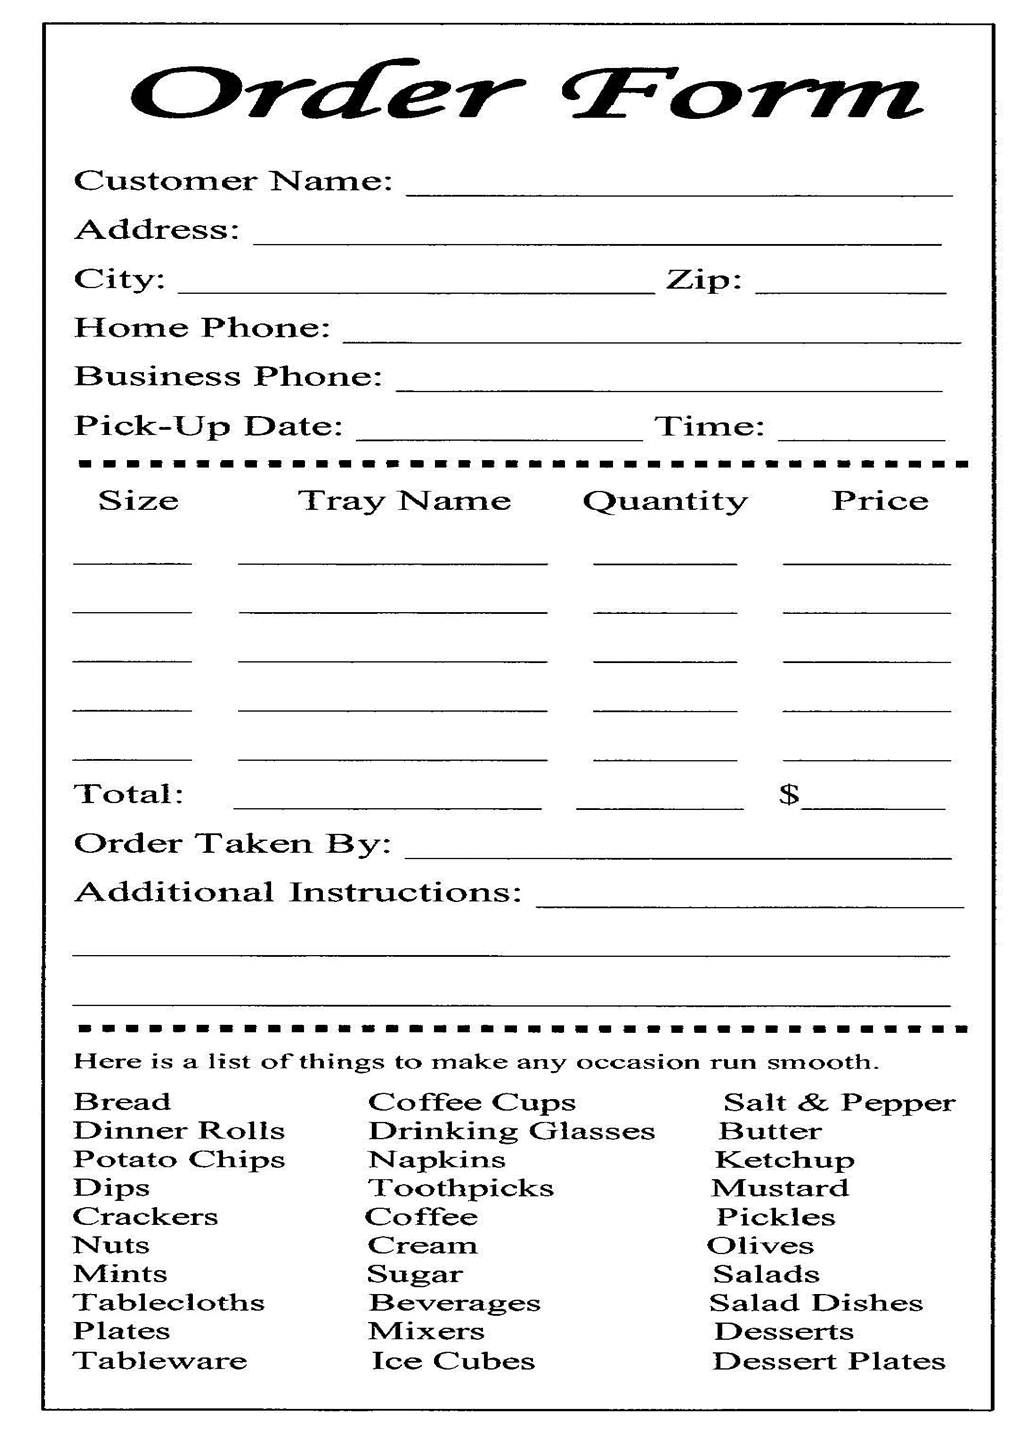 cake ball order form templates free | bakery order form template free download